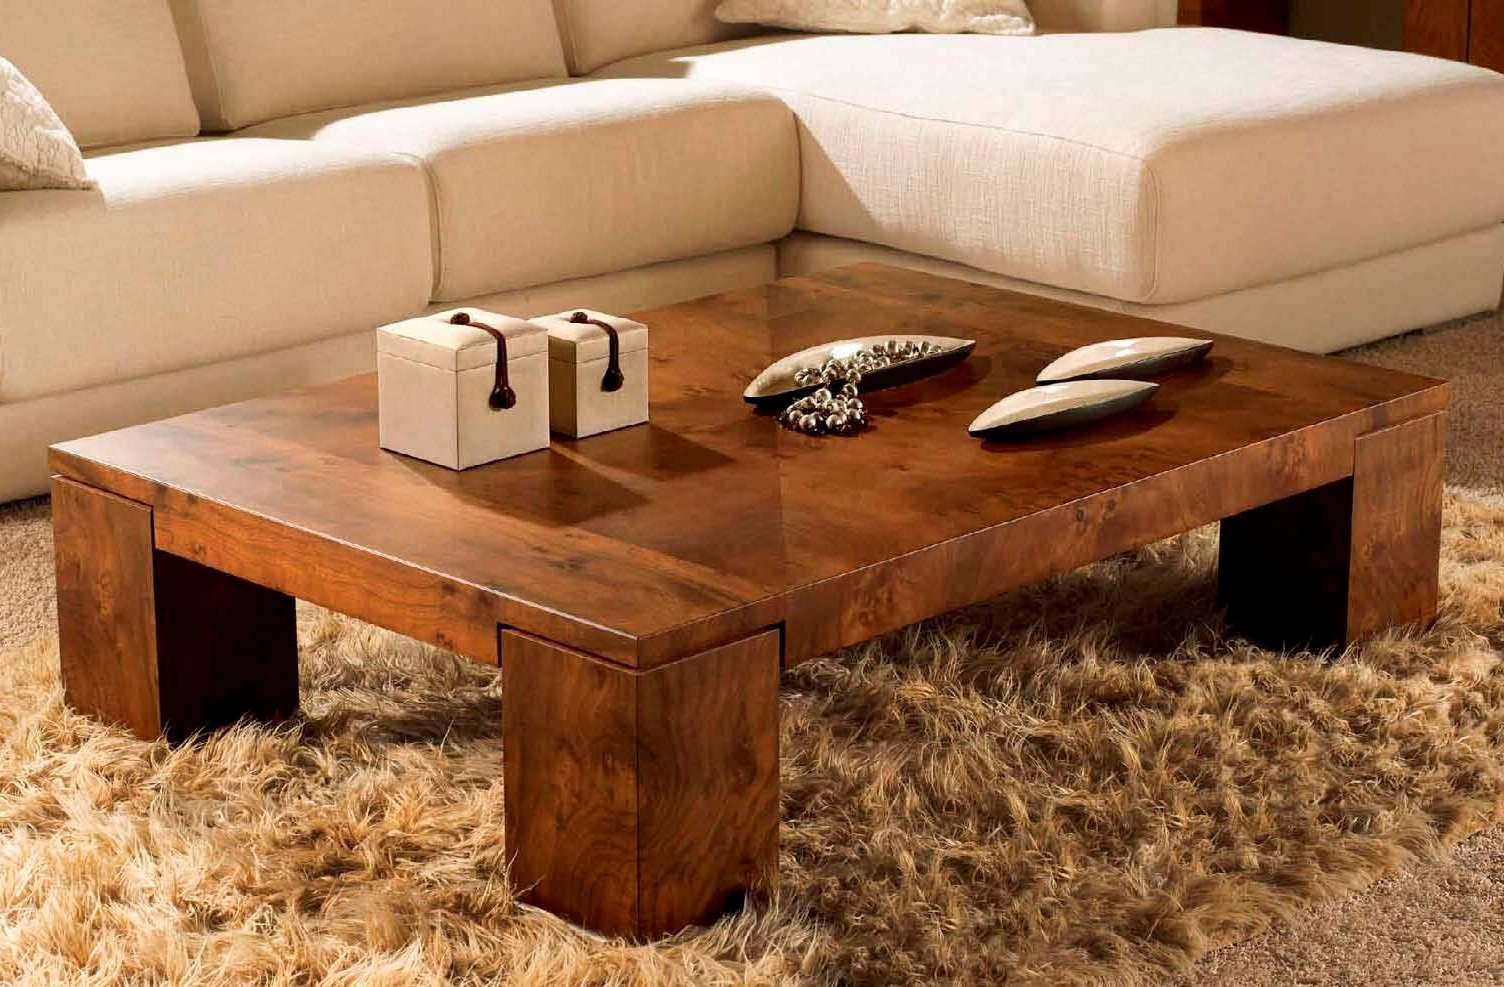 Solid Wood Coffee Tables South Africa - Coffee Addicts inside Large Solid Wood Coffee Tables (Image 12 of 15)